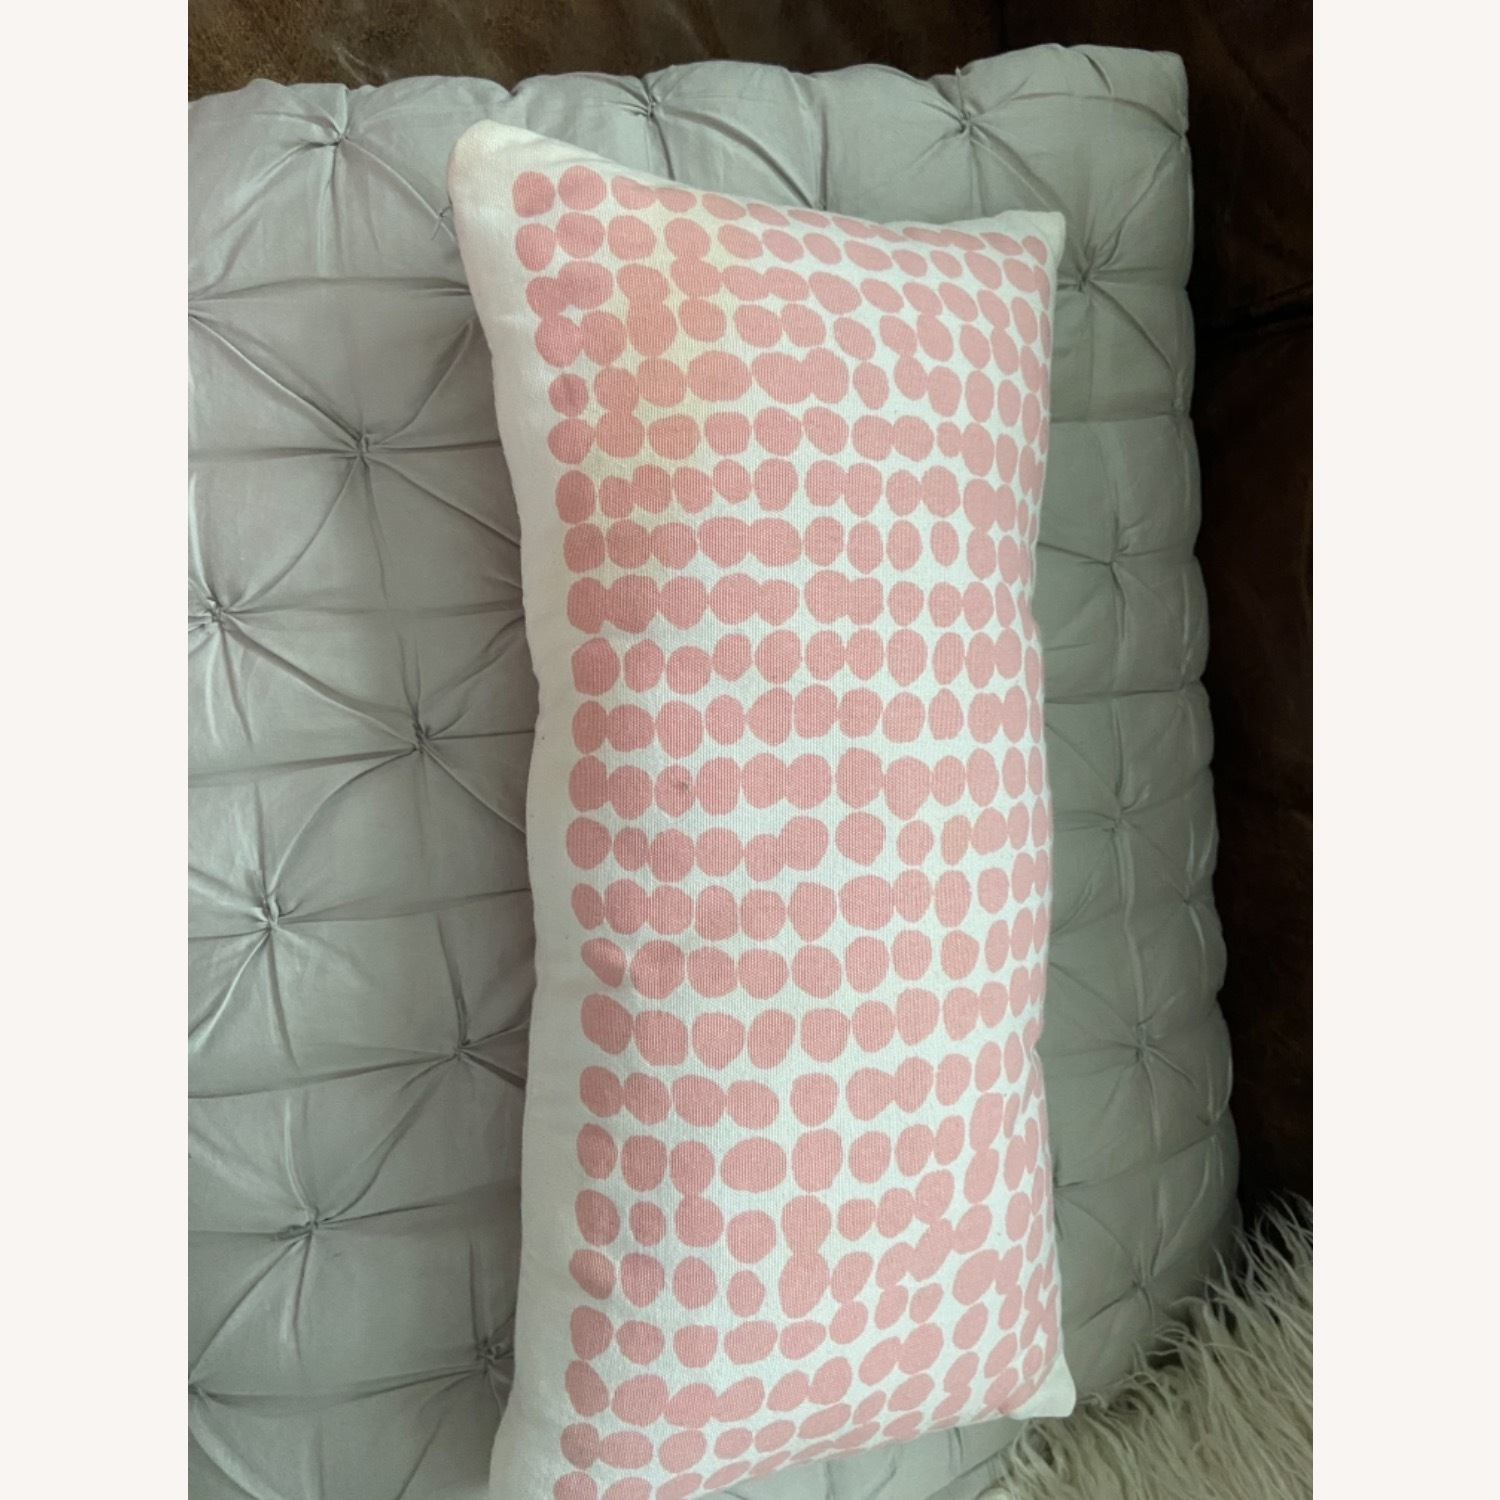 Kate Spade Pillow and Other Pillows - image-0